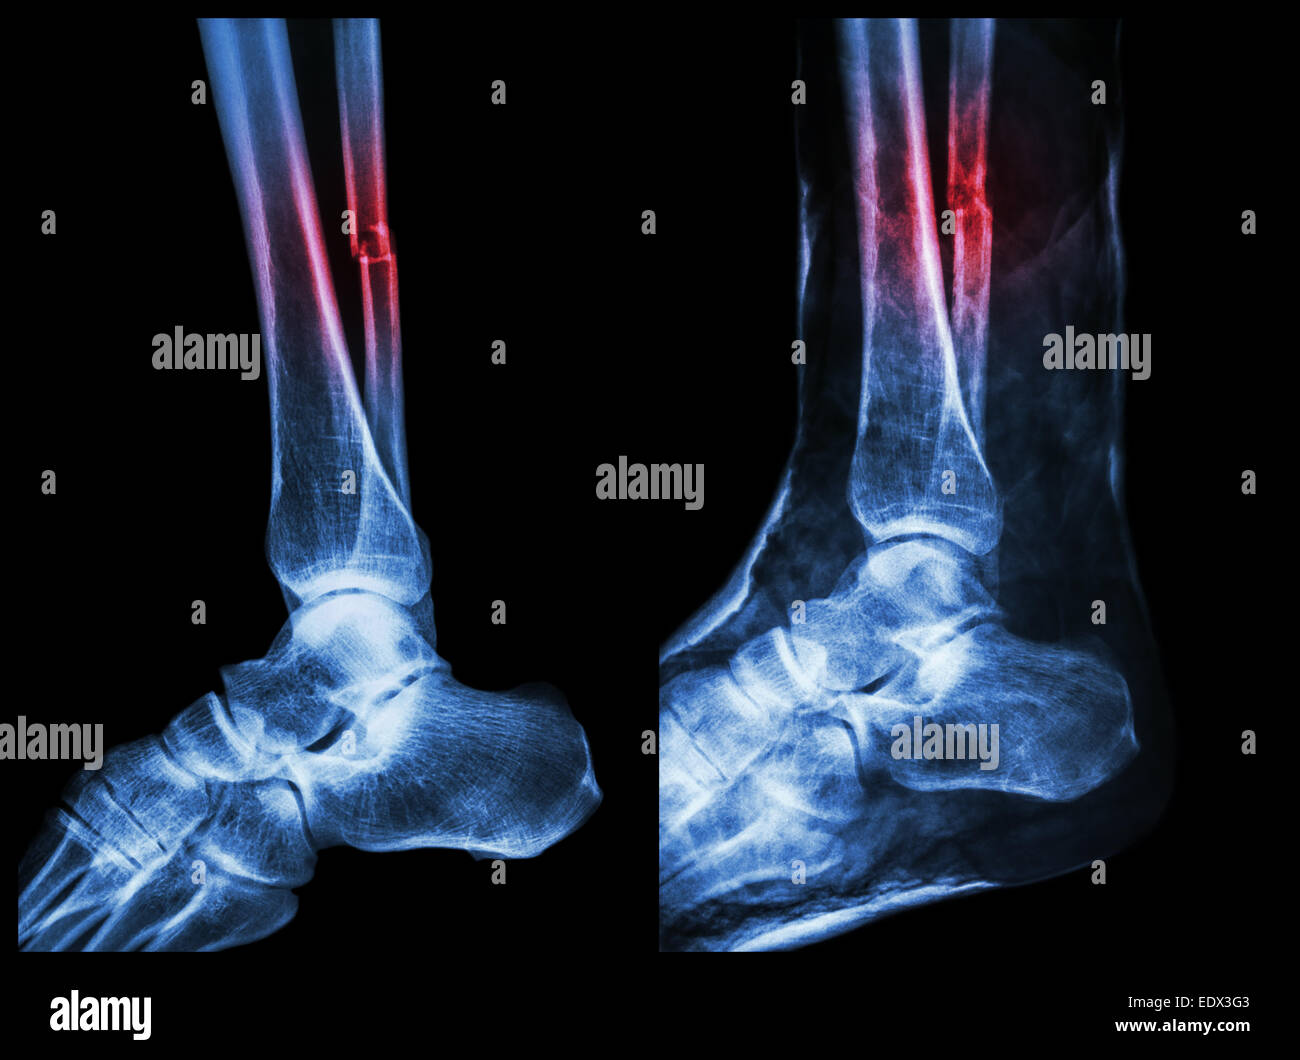 Splinted Stockfotos & Splinted Bilder - Alamy